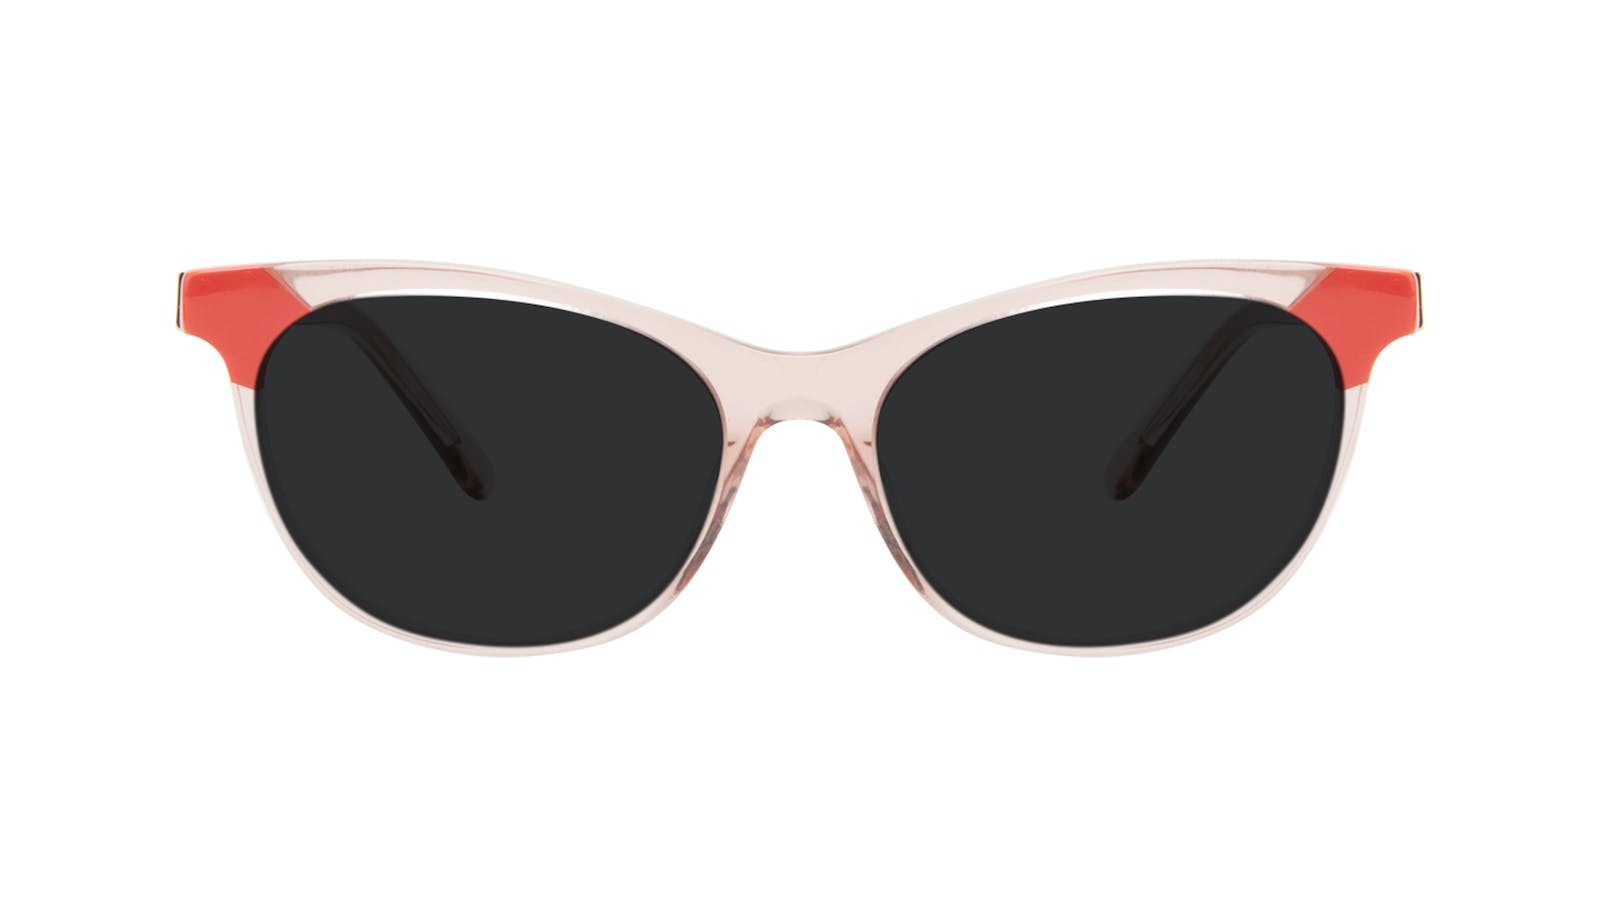 3bfb60931e Affordable Fashion Glasses Cat Eye Sunglasses Women Witty Pink Coral